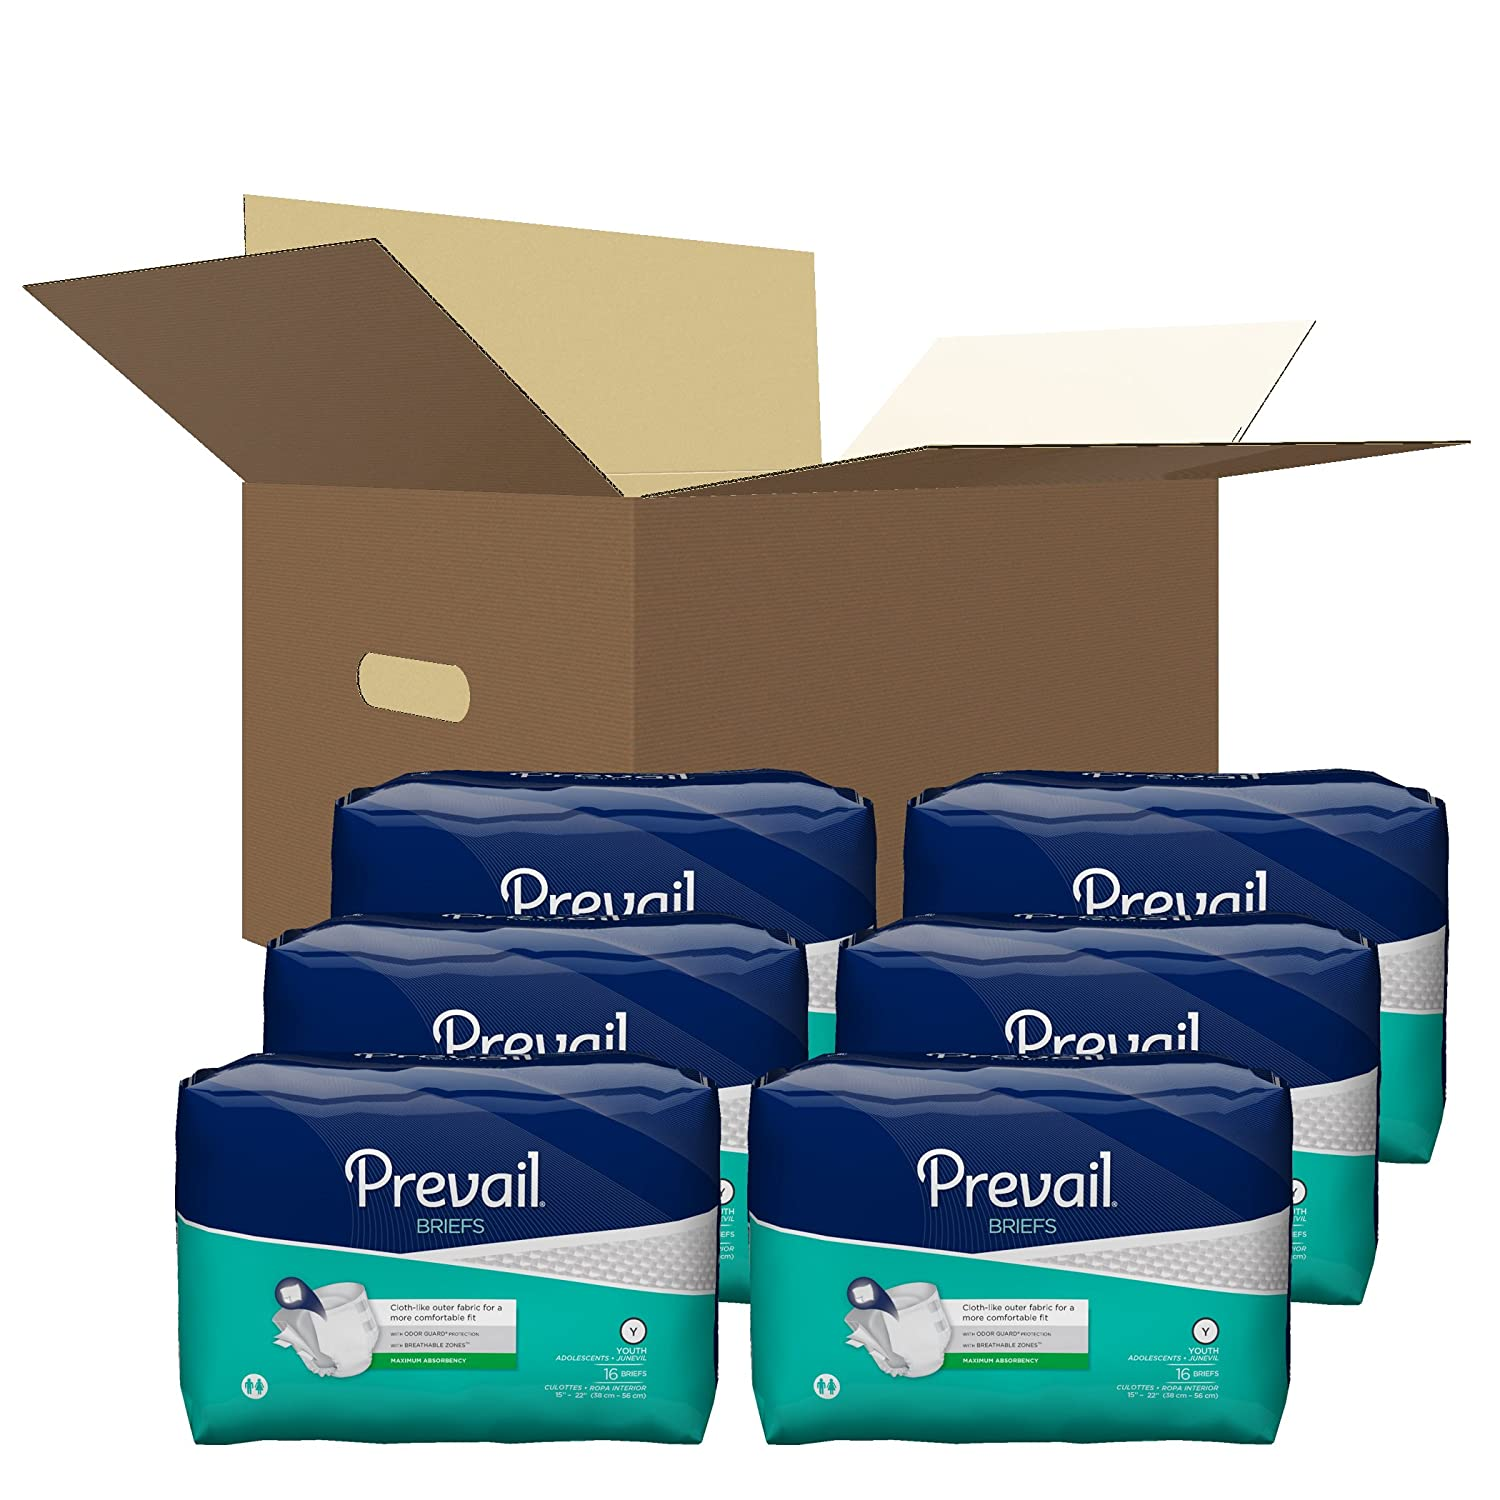 Amazon.com: Prevail Briefs Youth Case of 96 (6 Packs of 16) - PV-015: Health & Personal Care